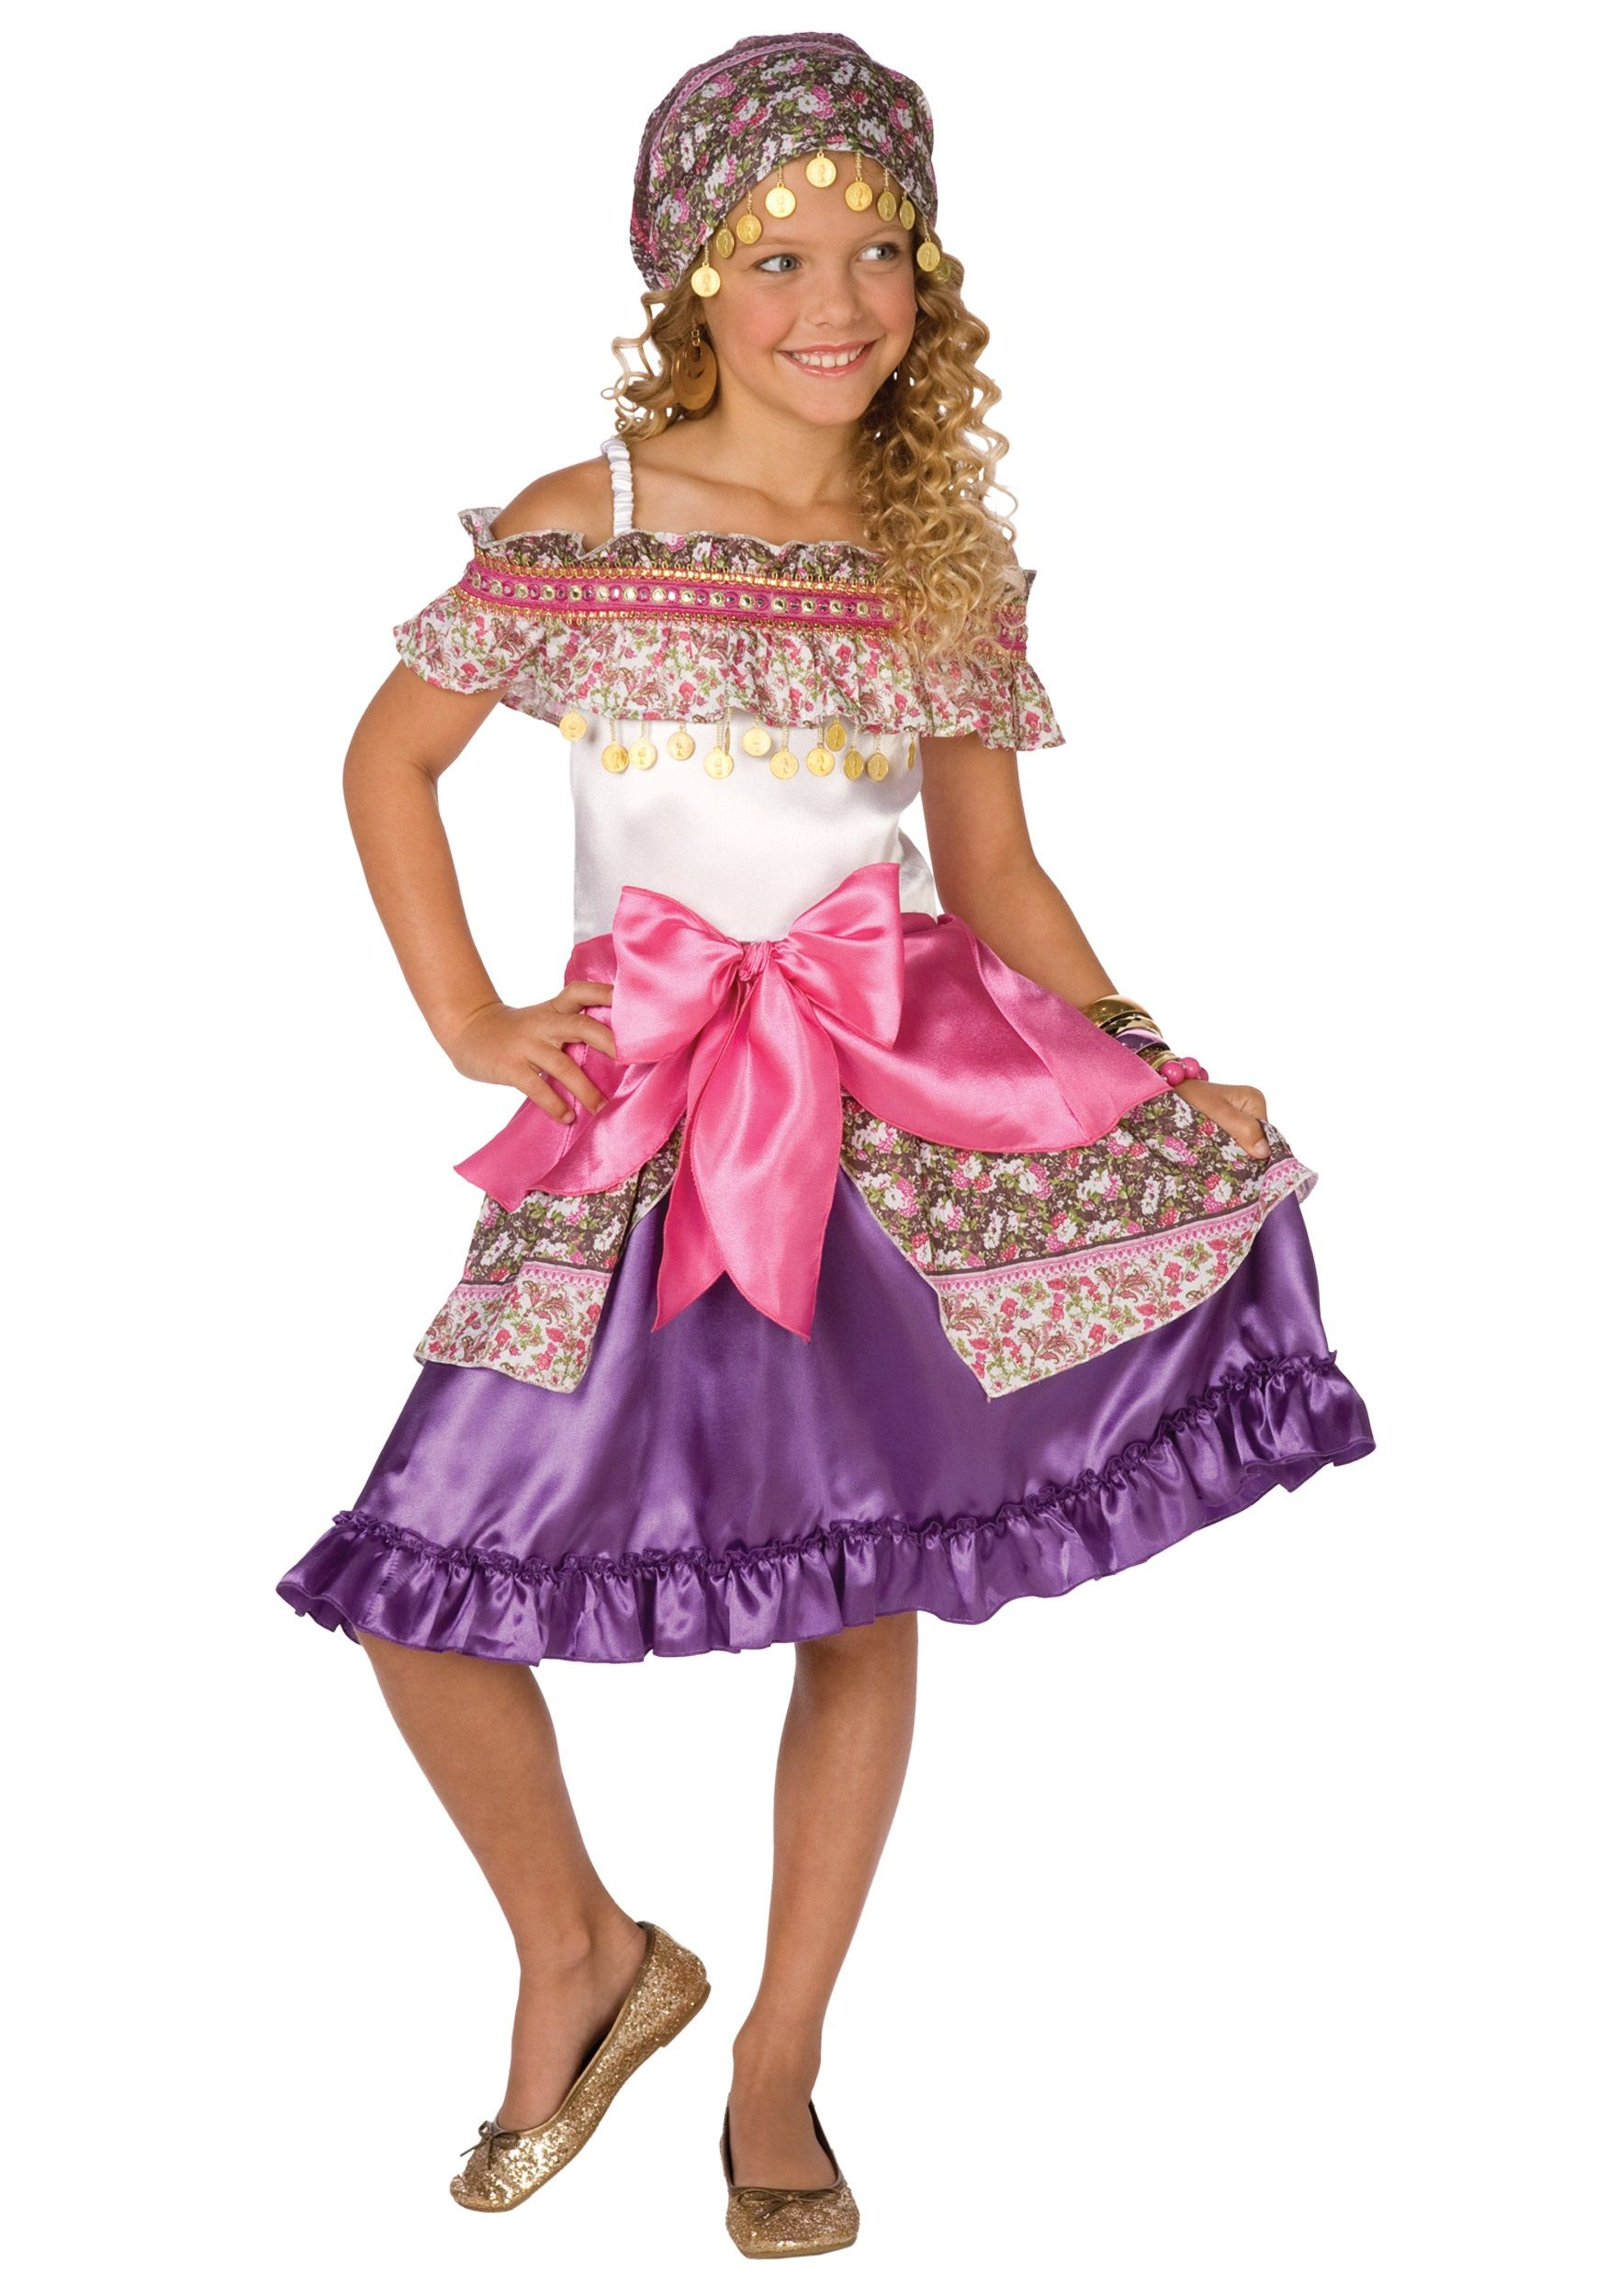 explore little girl halloween costumes and more - Little Girls Halloween Costume Ideas